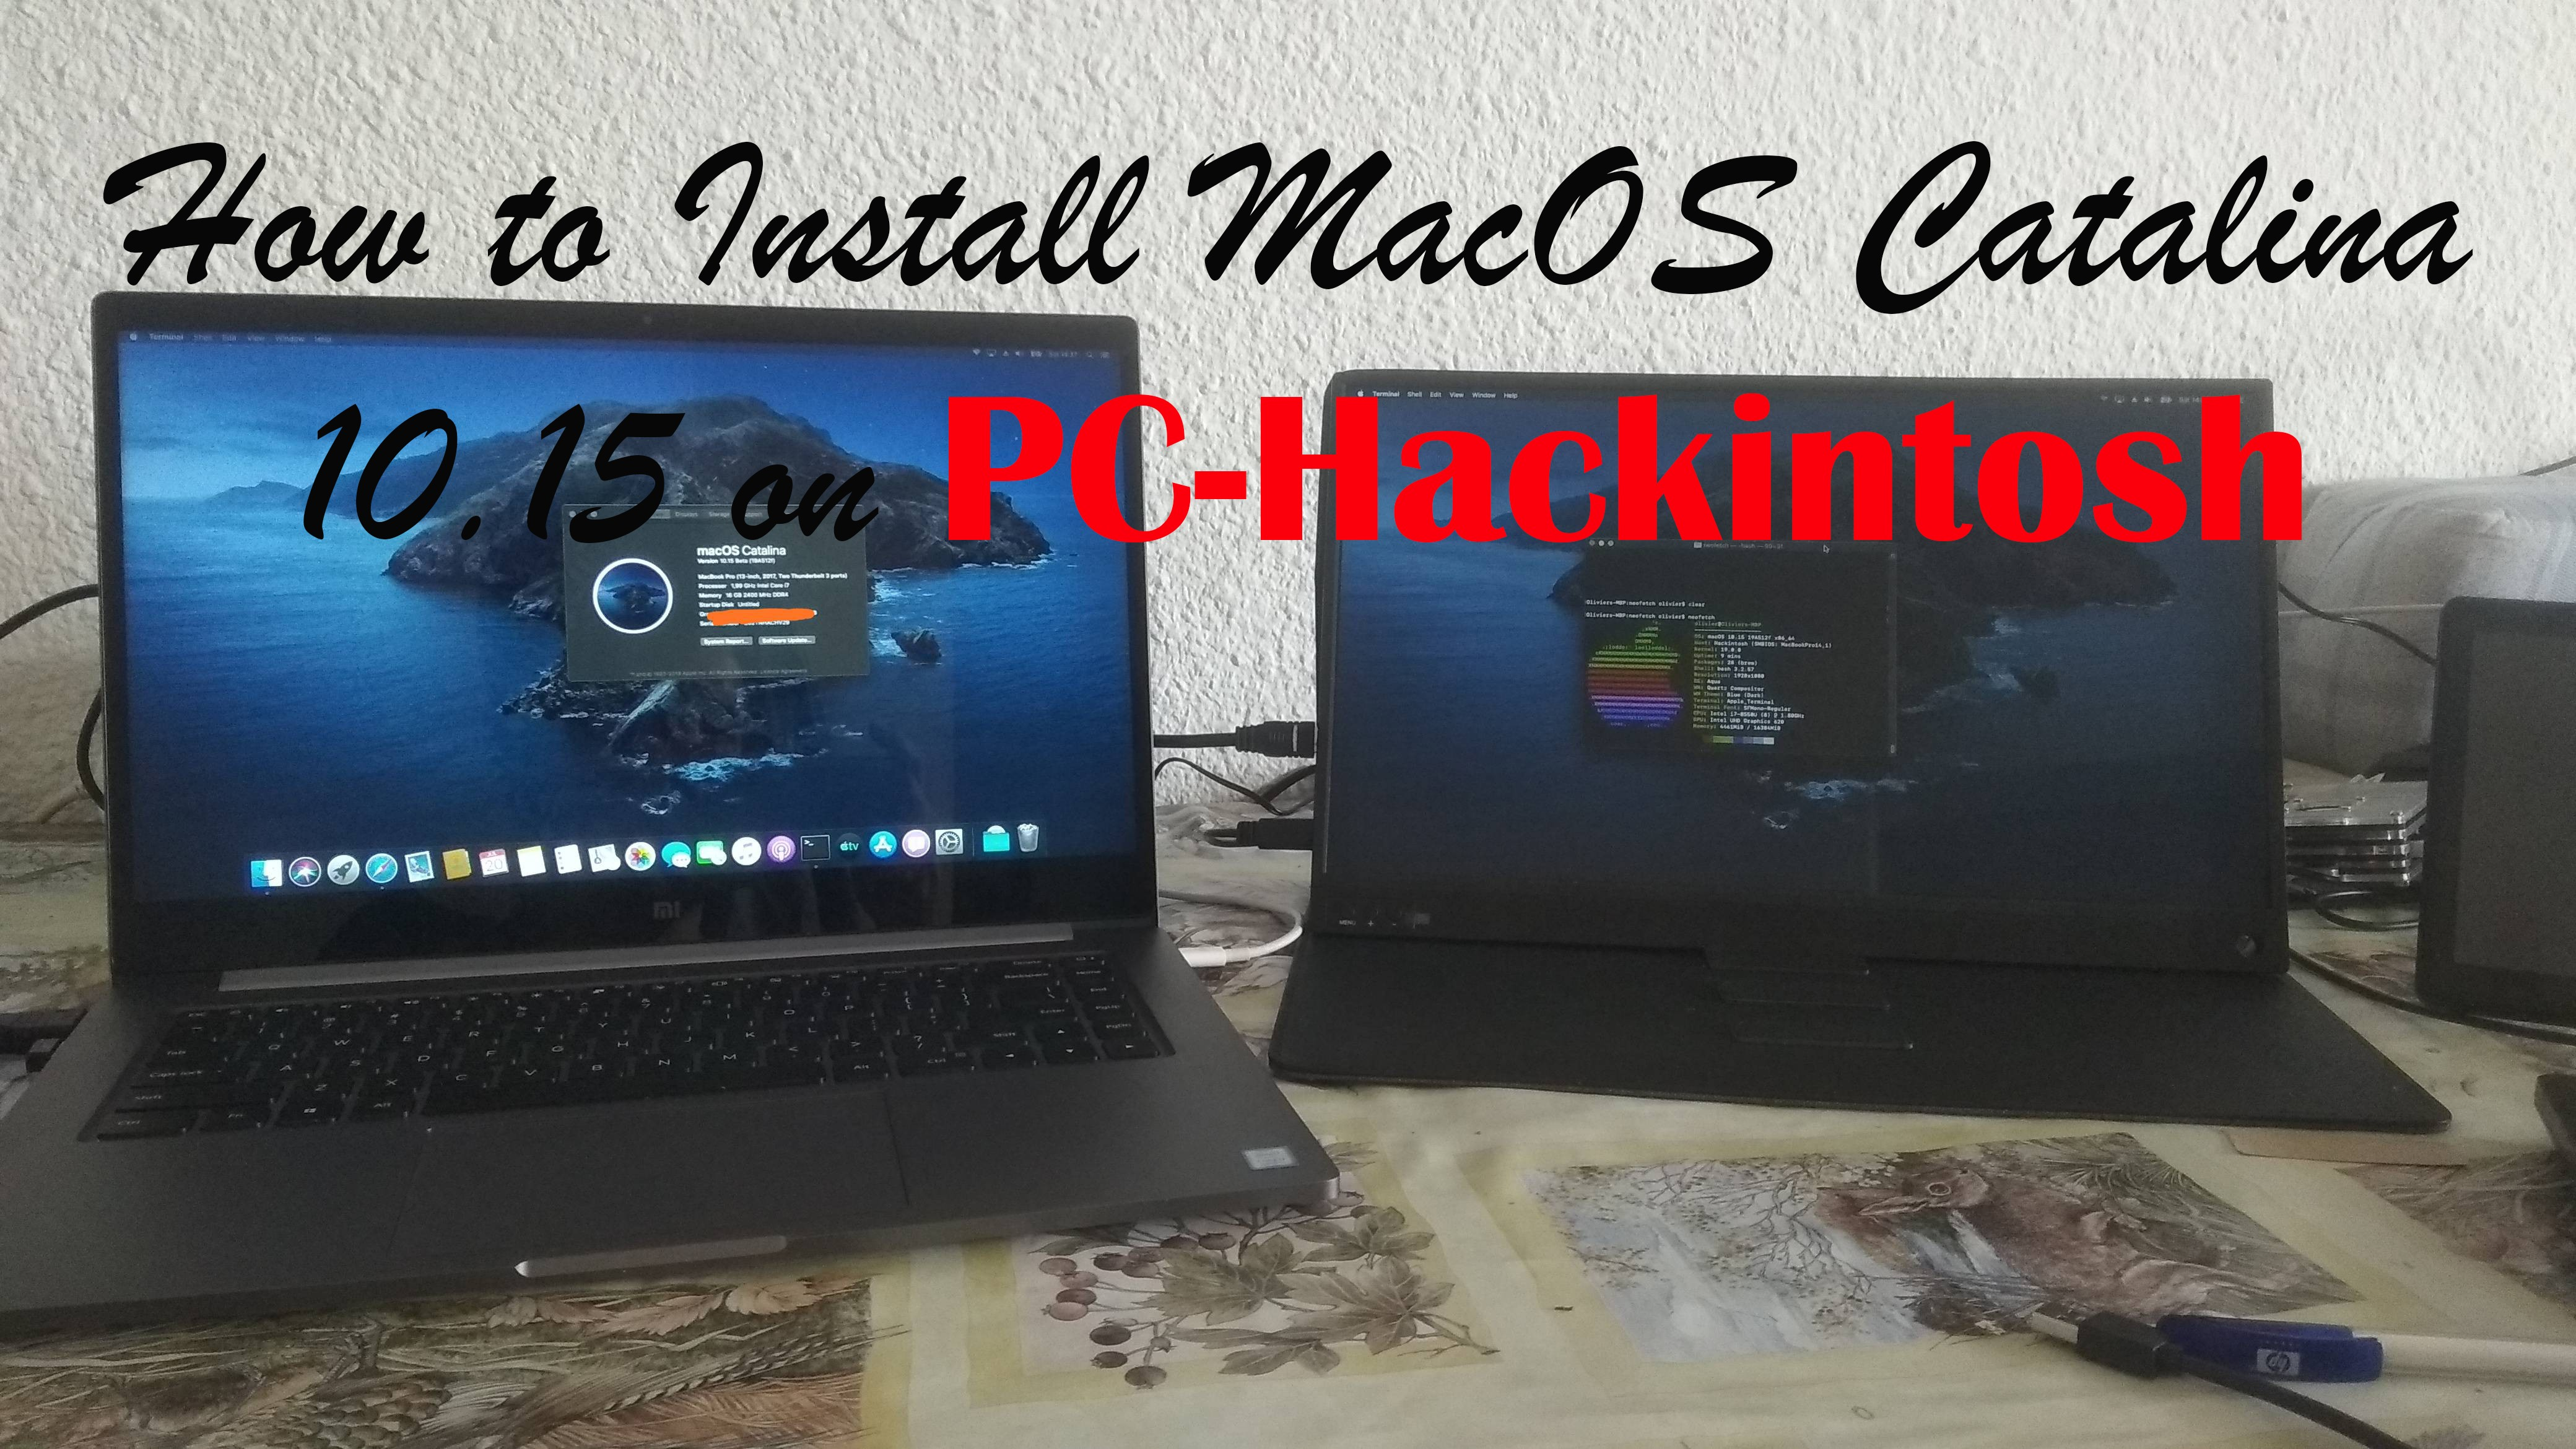 How to Install Mac OS X on Windows PC - YouTube